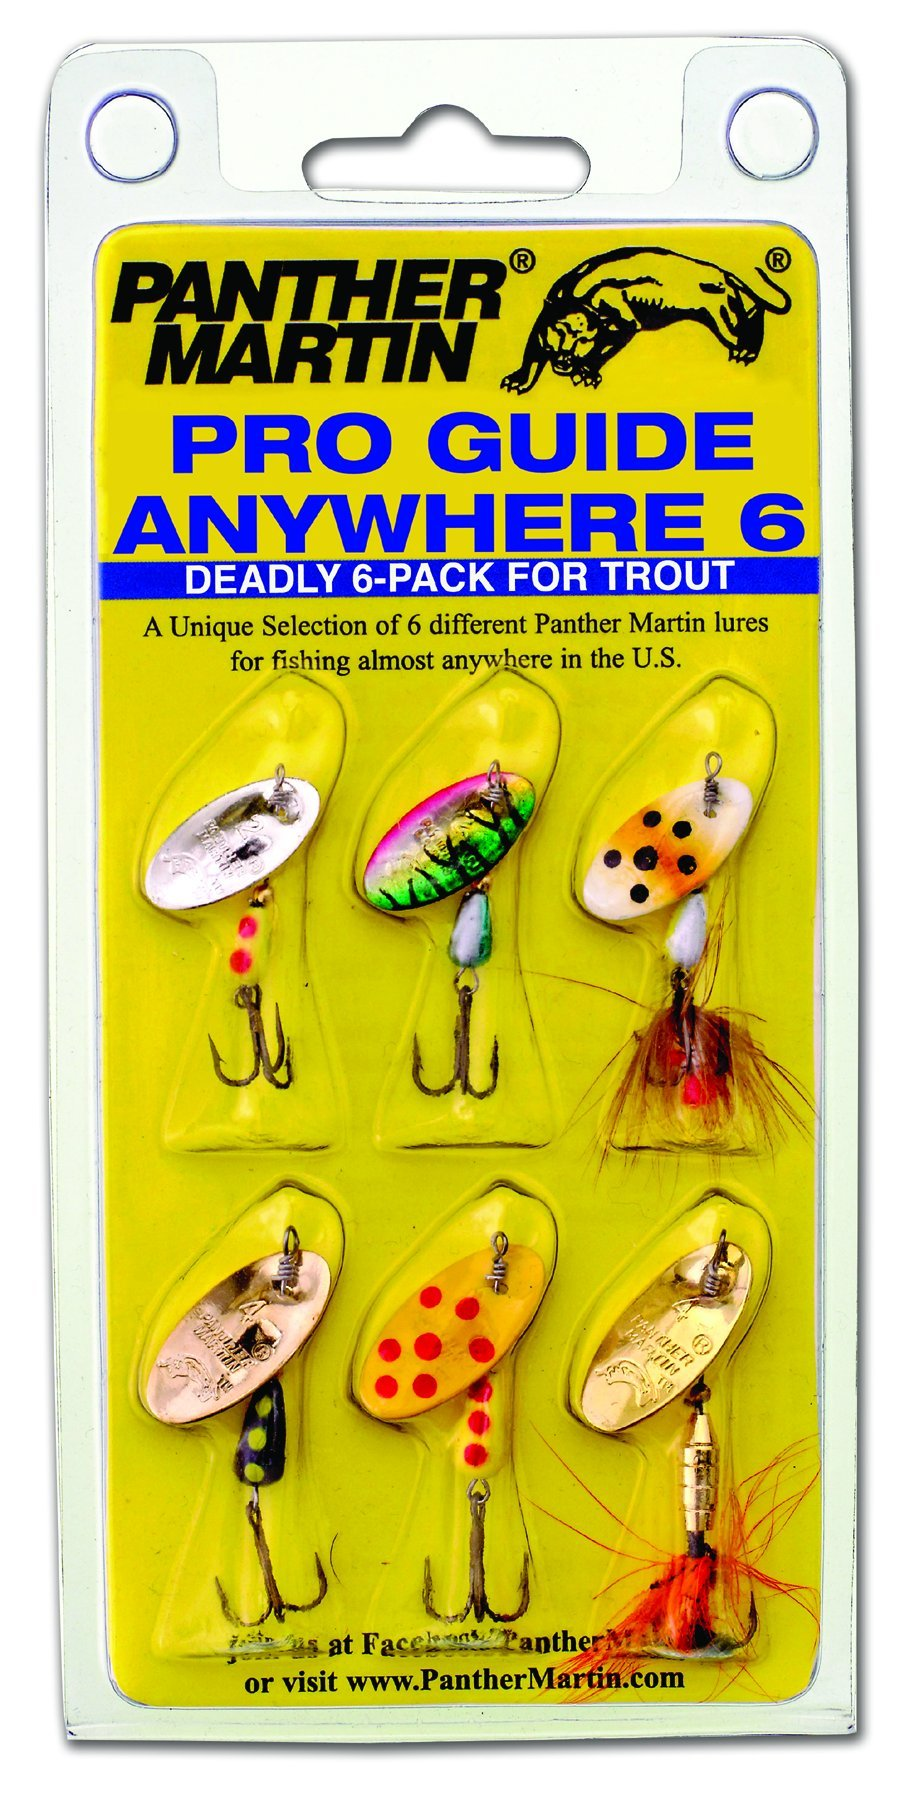 Panther Martin Pro Guide Anywhere 6 Pack by Panther Martin